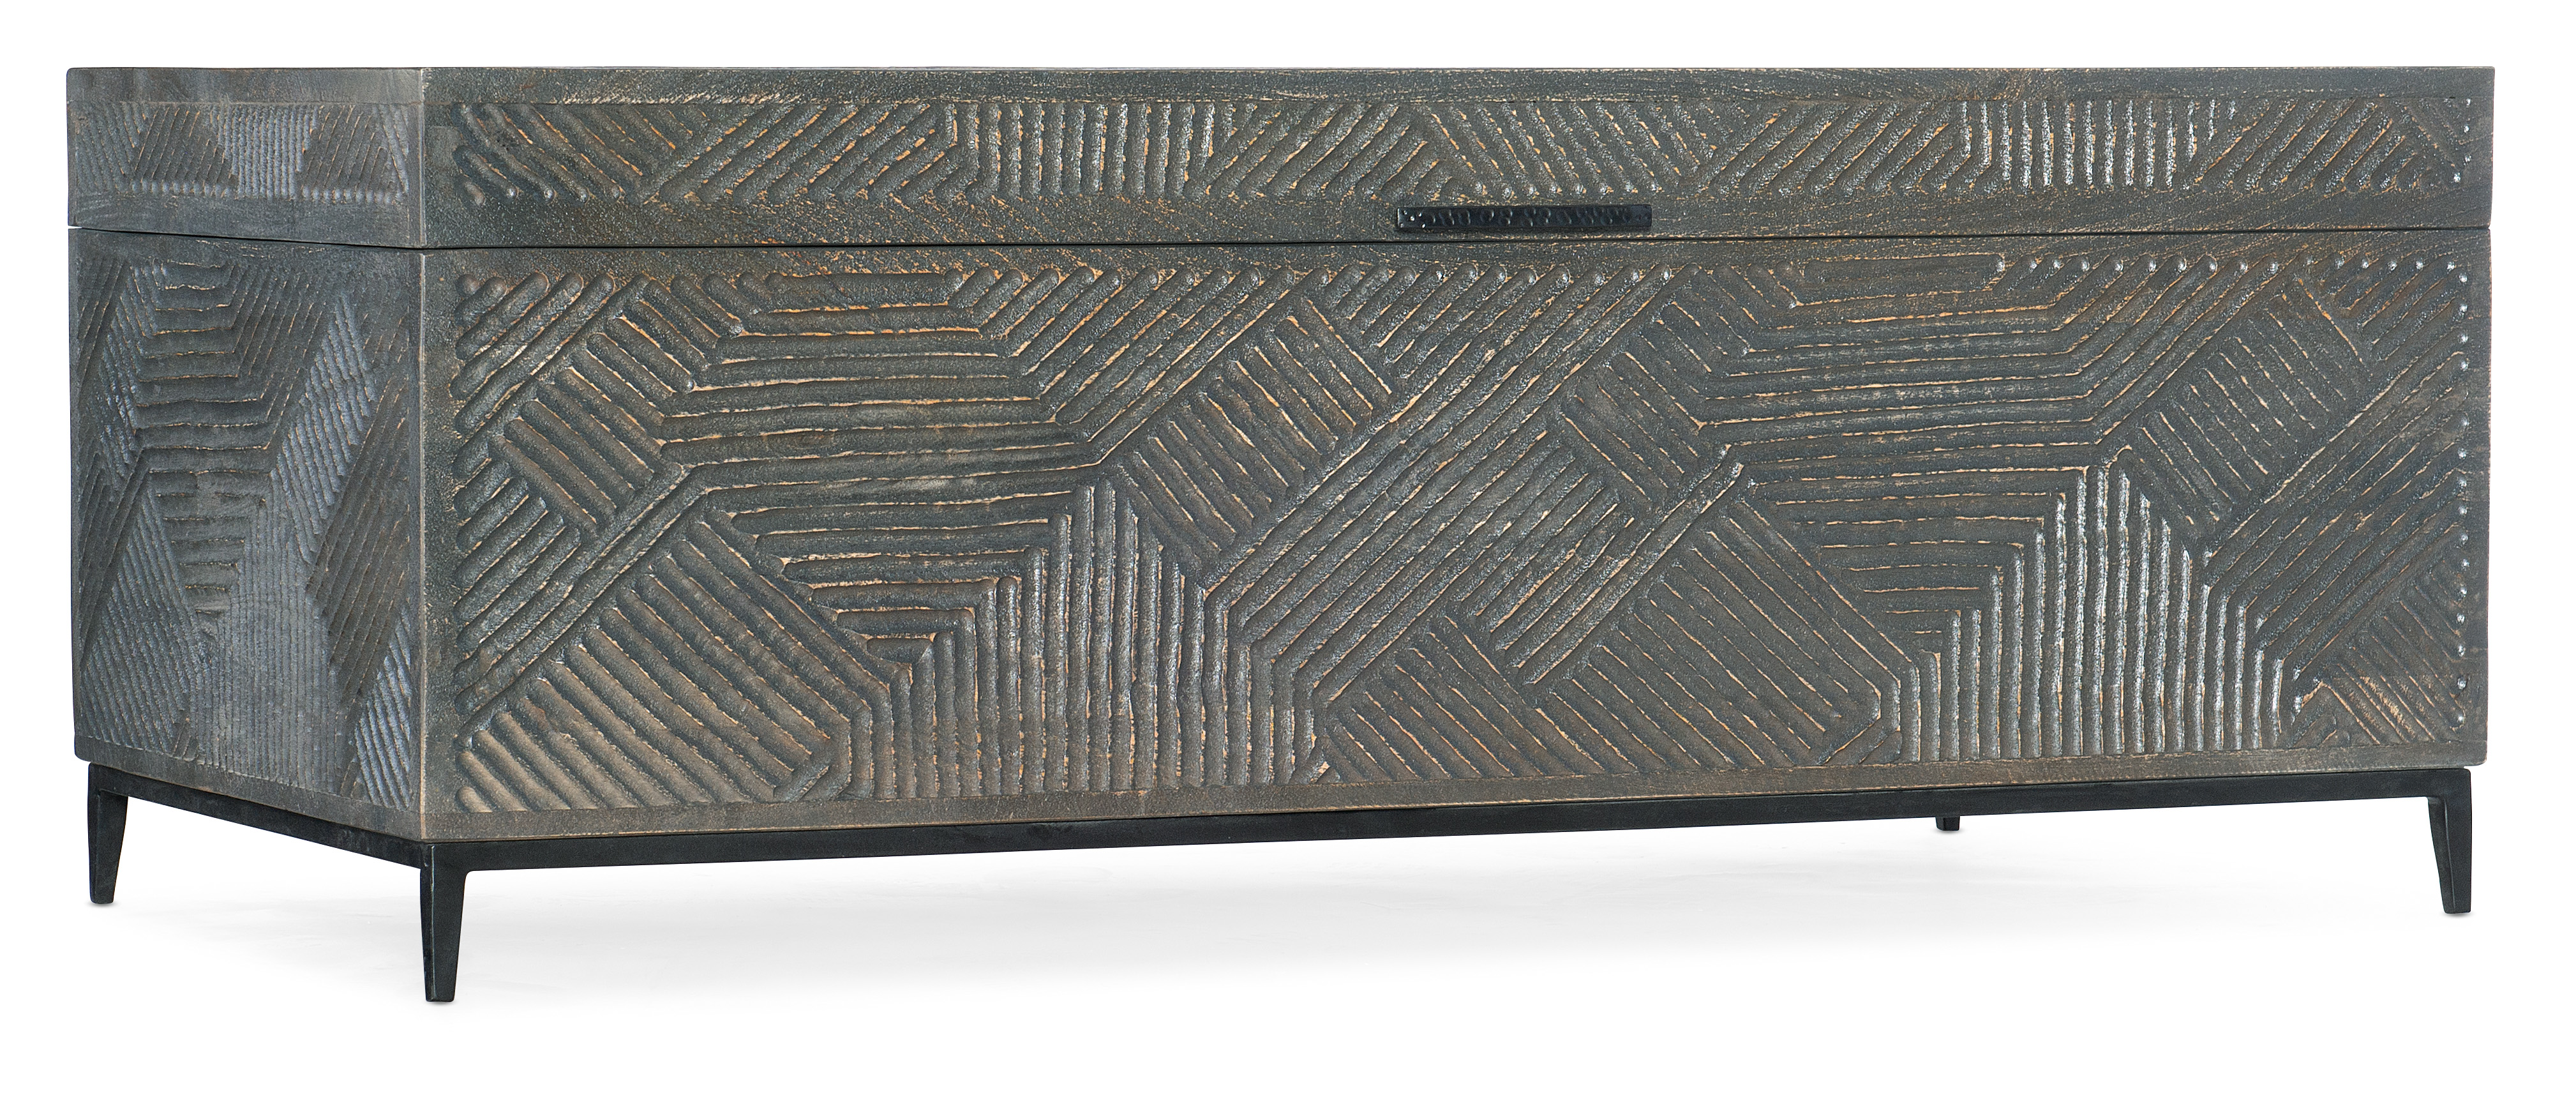 Commerce and Market Carved Chest Cocktail Table by Hooker Furniture at Fashion Furniture